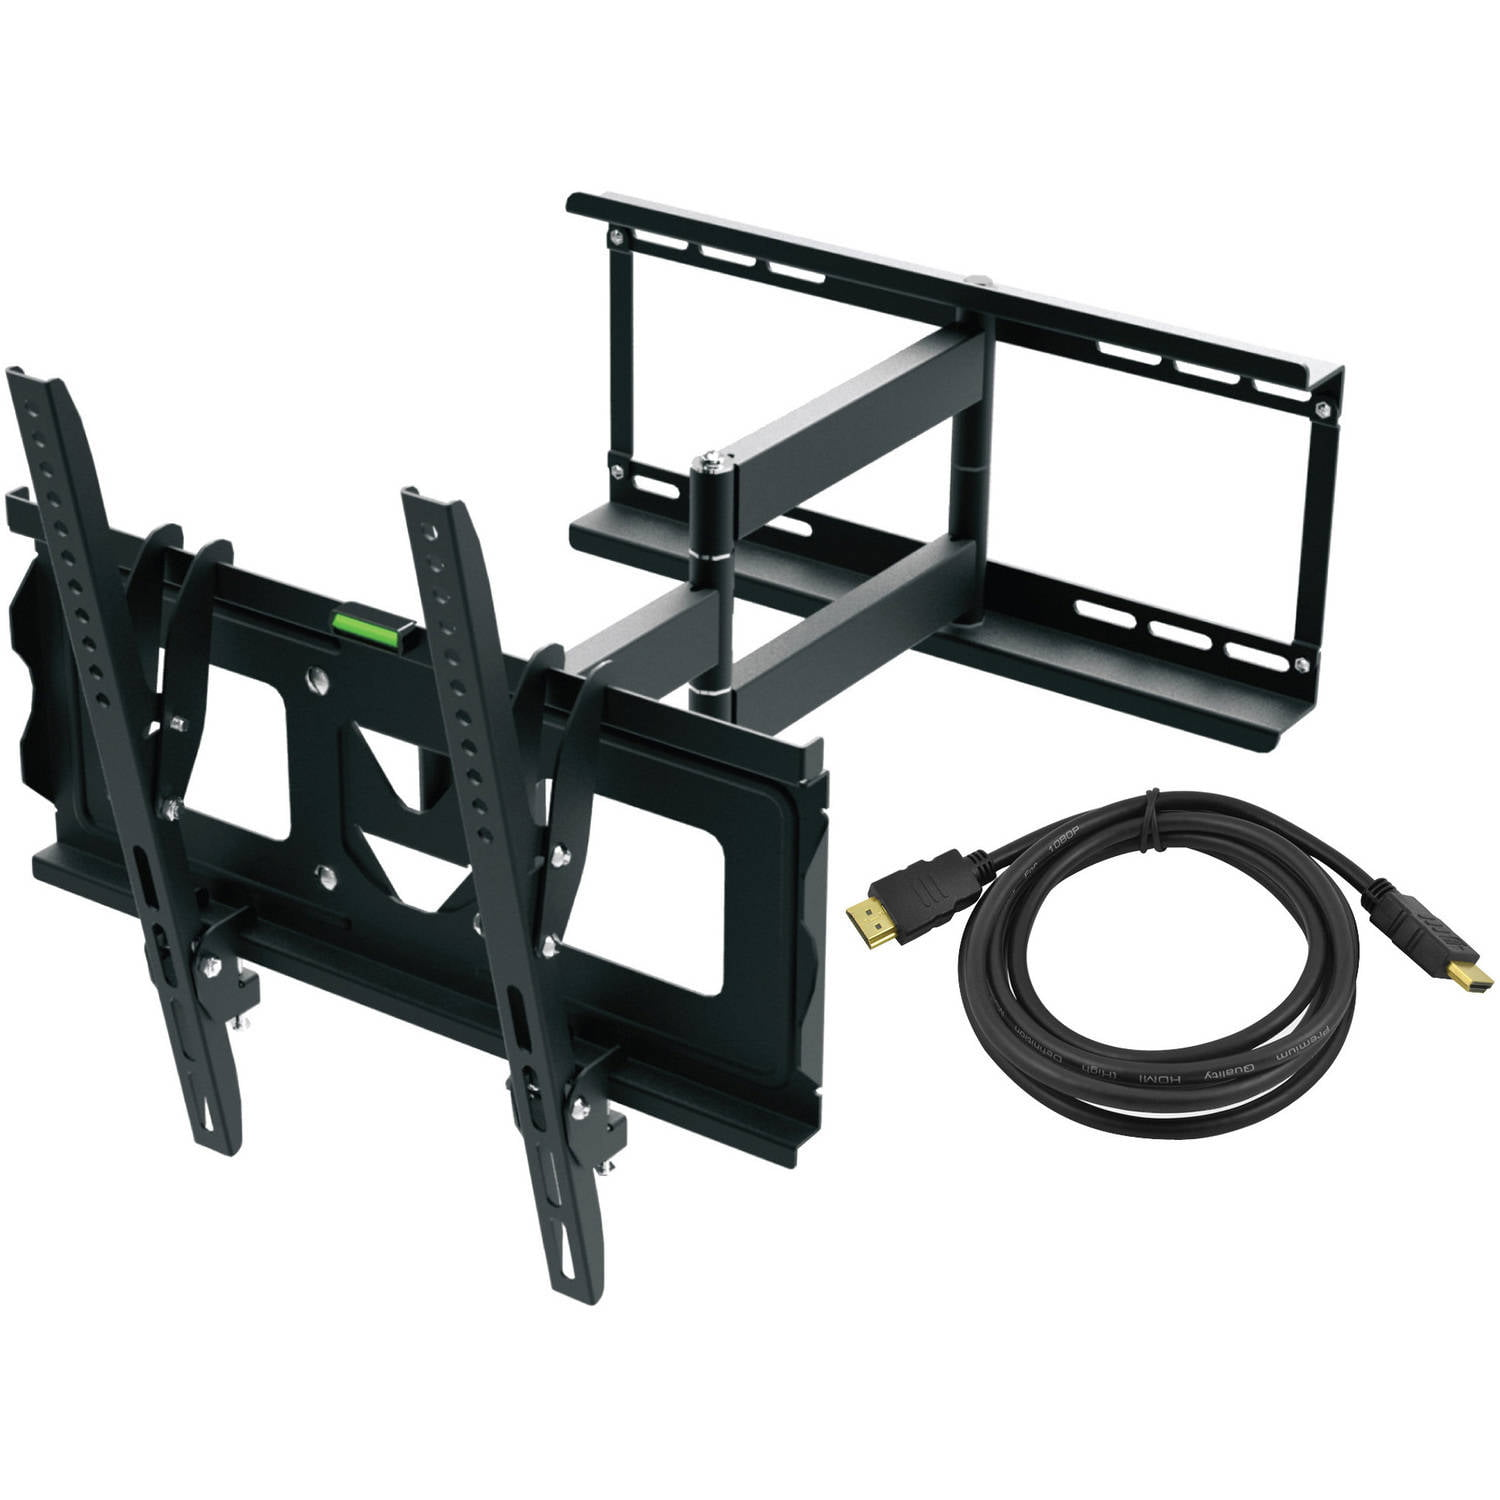 "Ematic Full Motion TV Wall Mount Kit with HDMI Cable for 19"" 70"